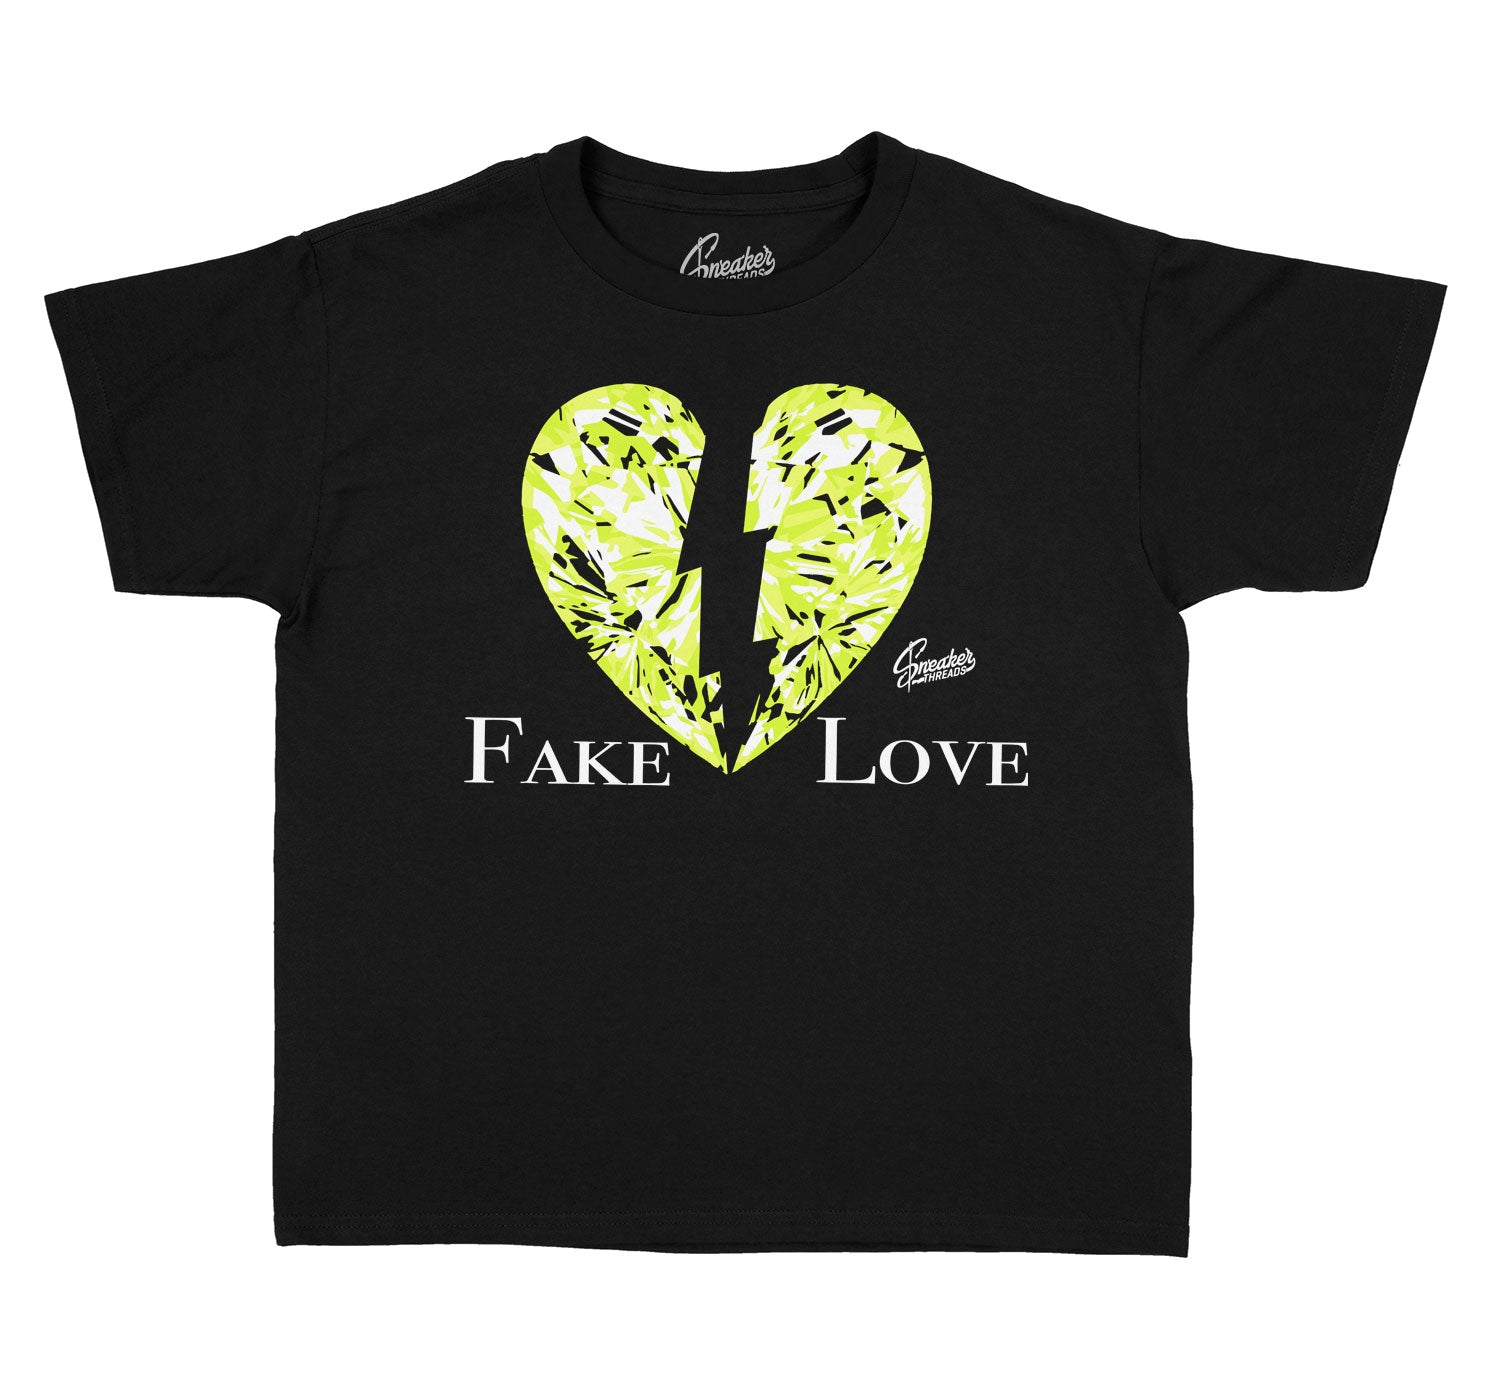 Kids - Volt Foamposite Fake Love Shirt